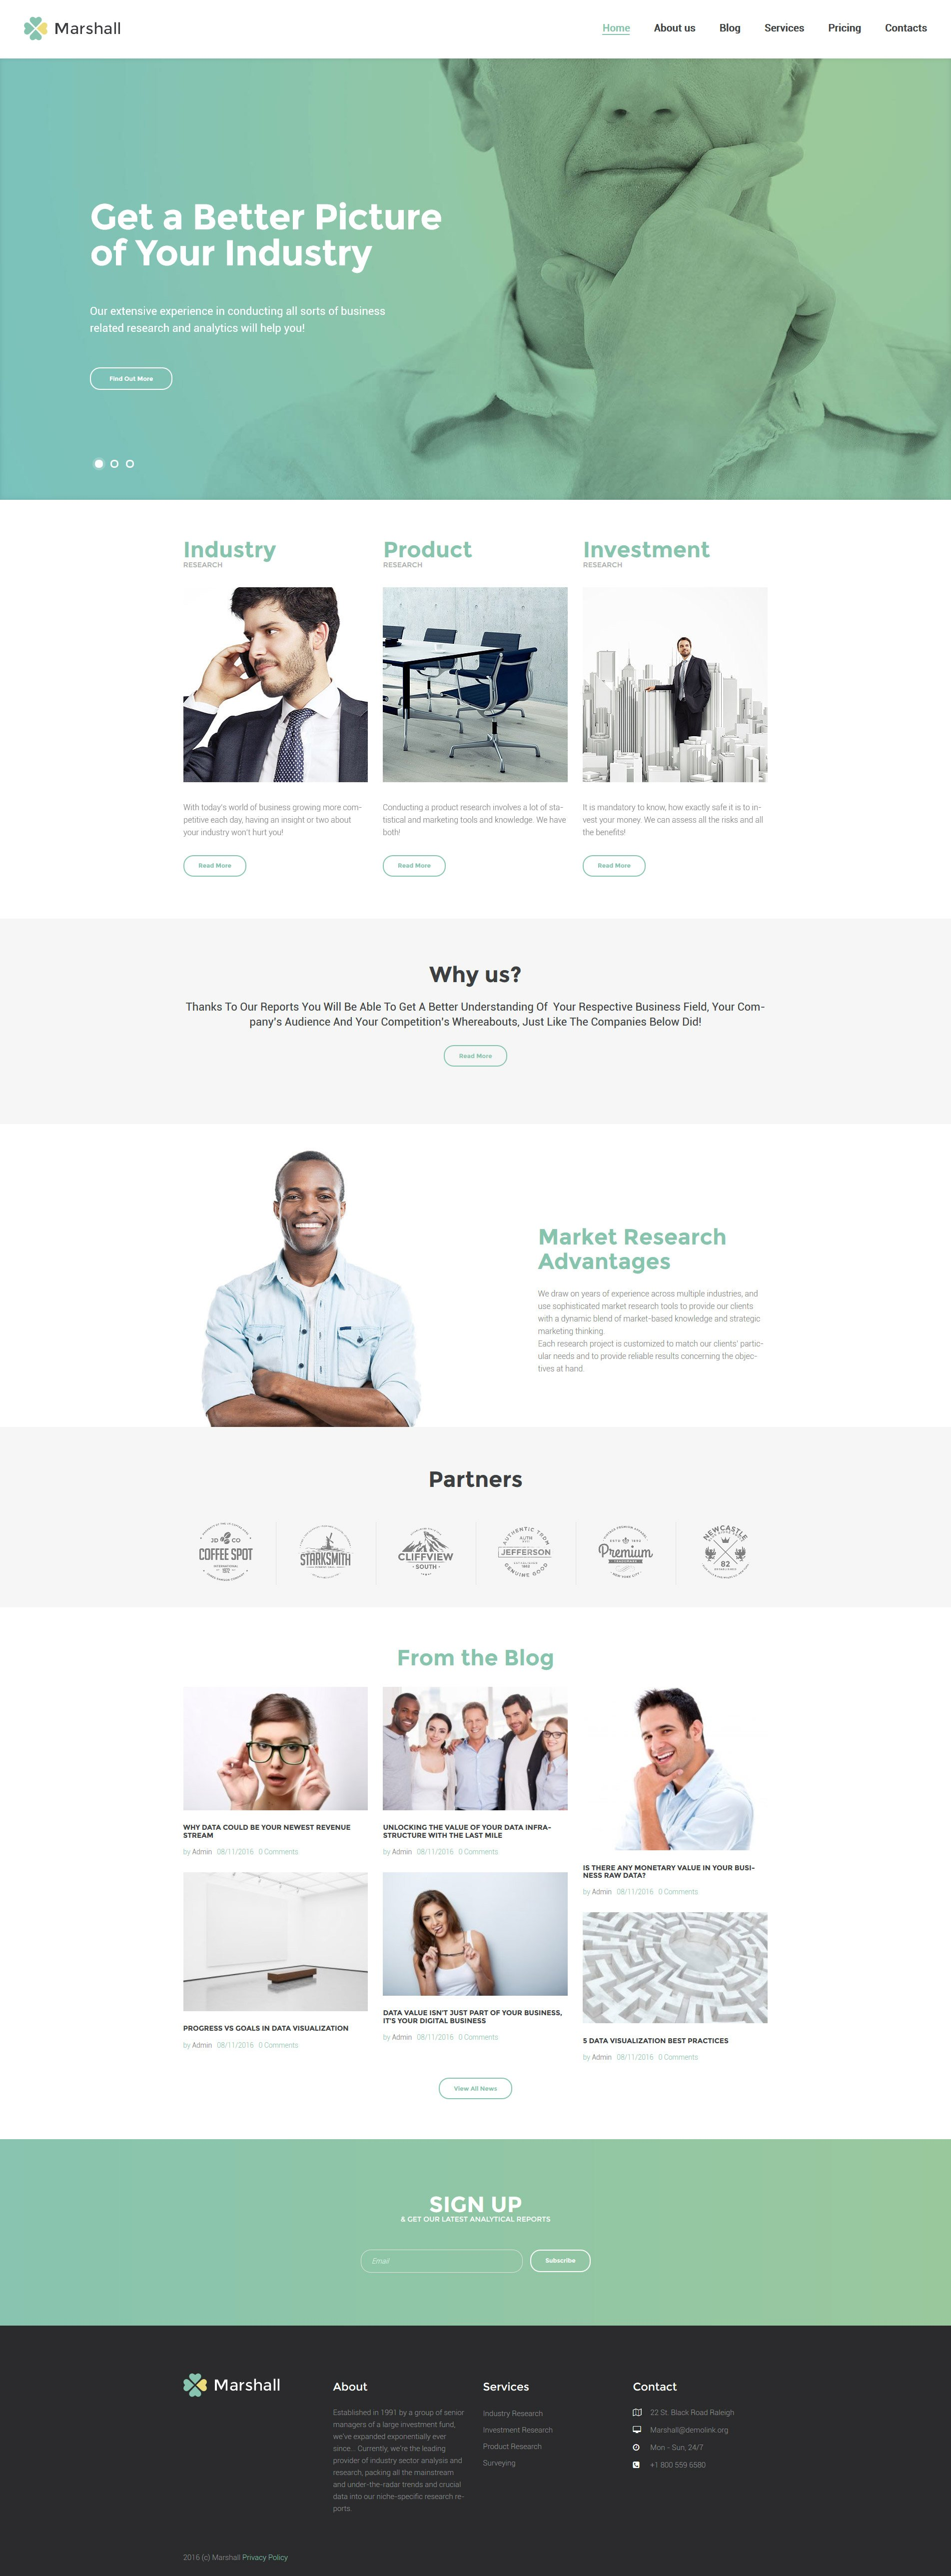 Marshall - Business Analysis and Market Research Agency WordPress Theme - screenshot